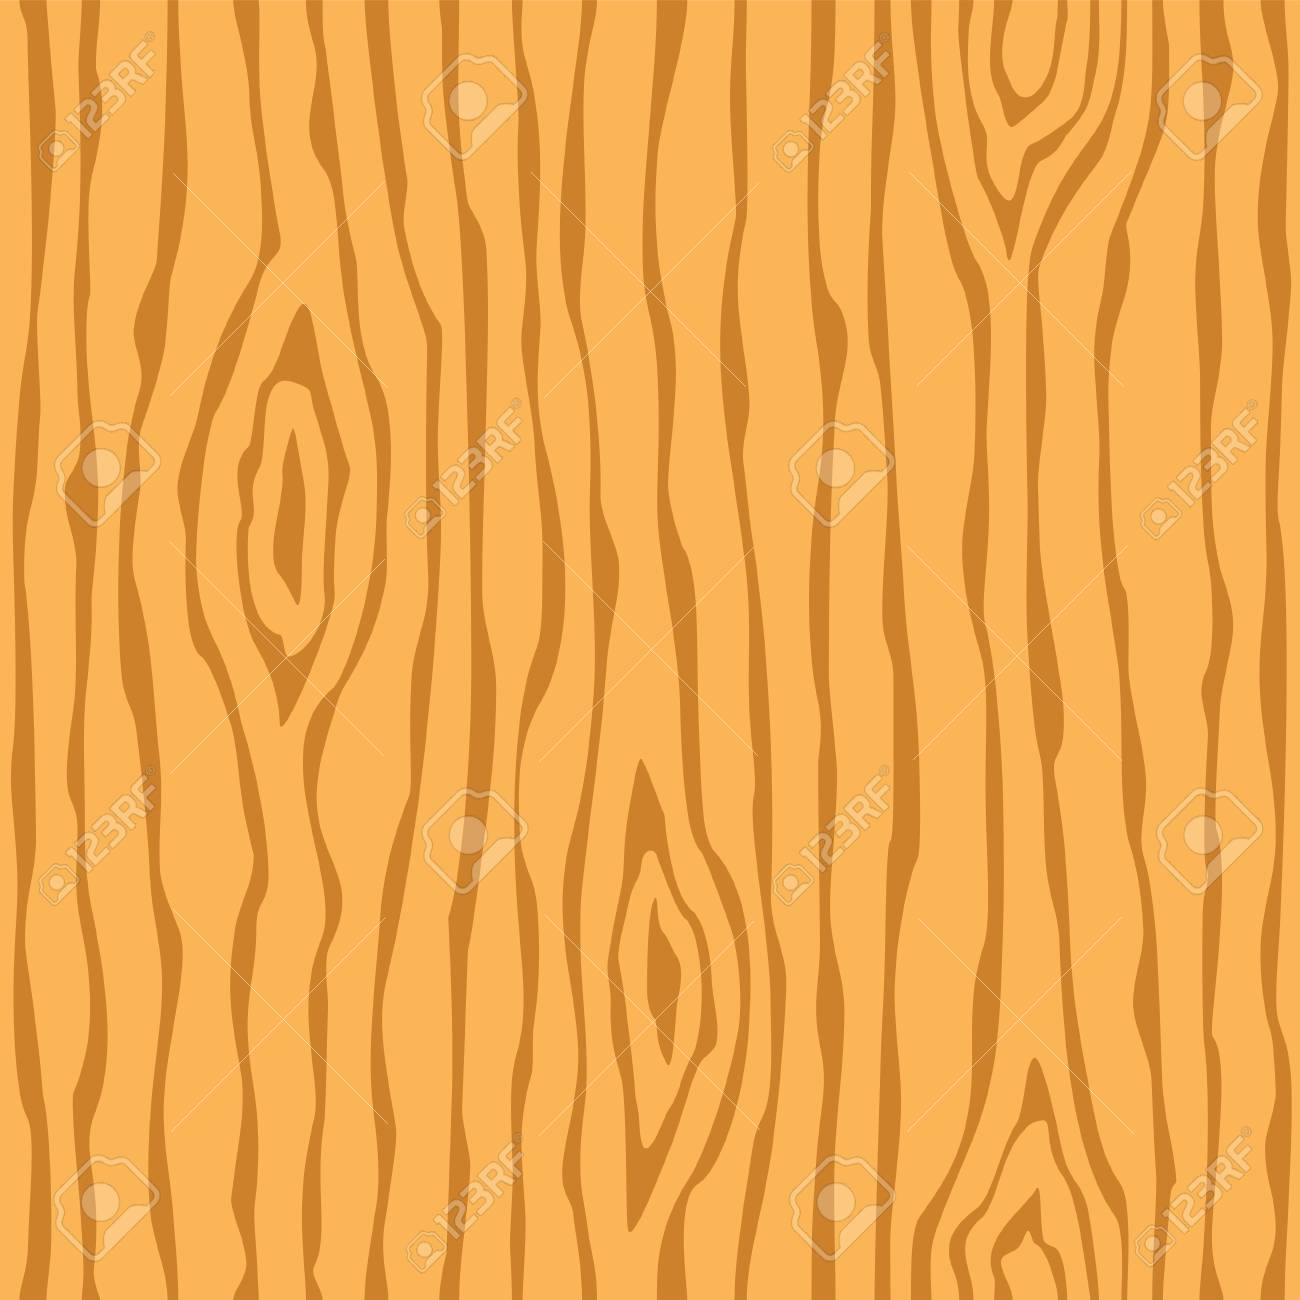 Wood Grain Texture Seamless Brown Wooden Pattern Abstract